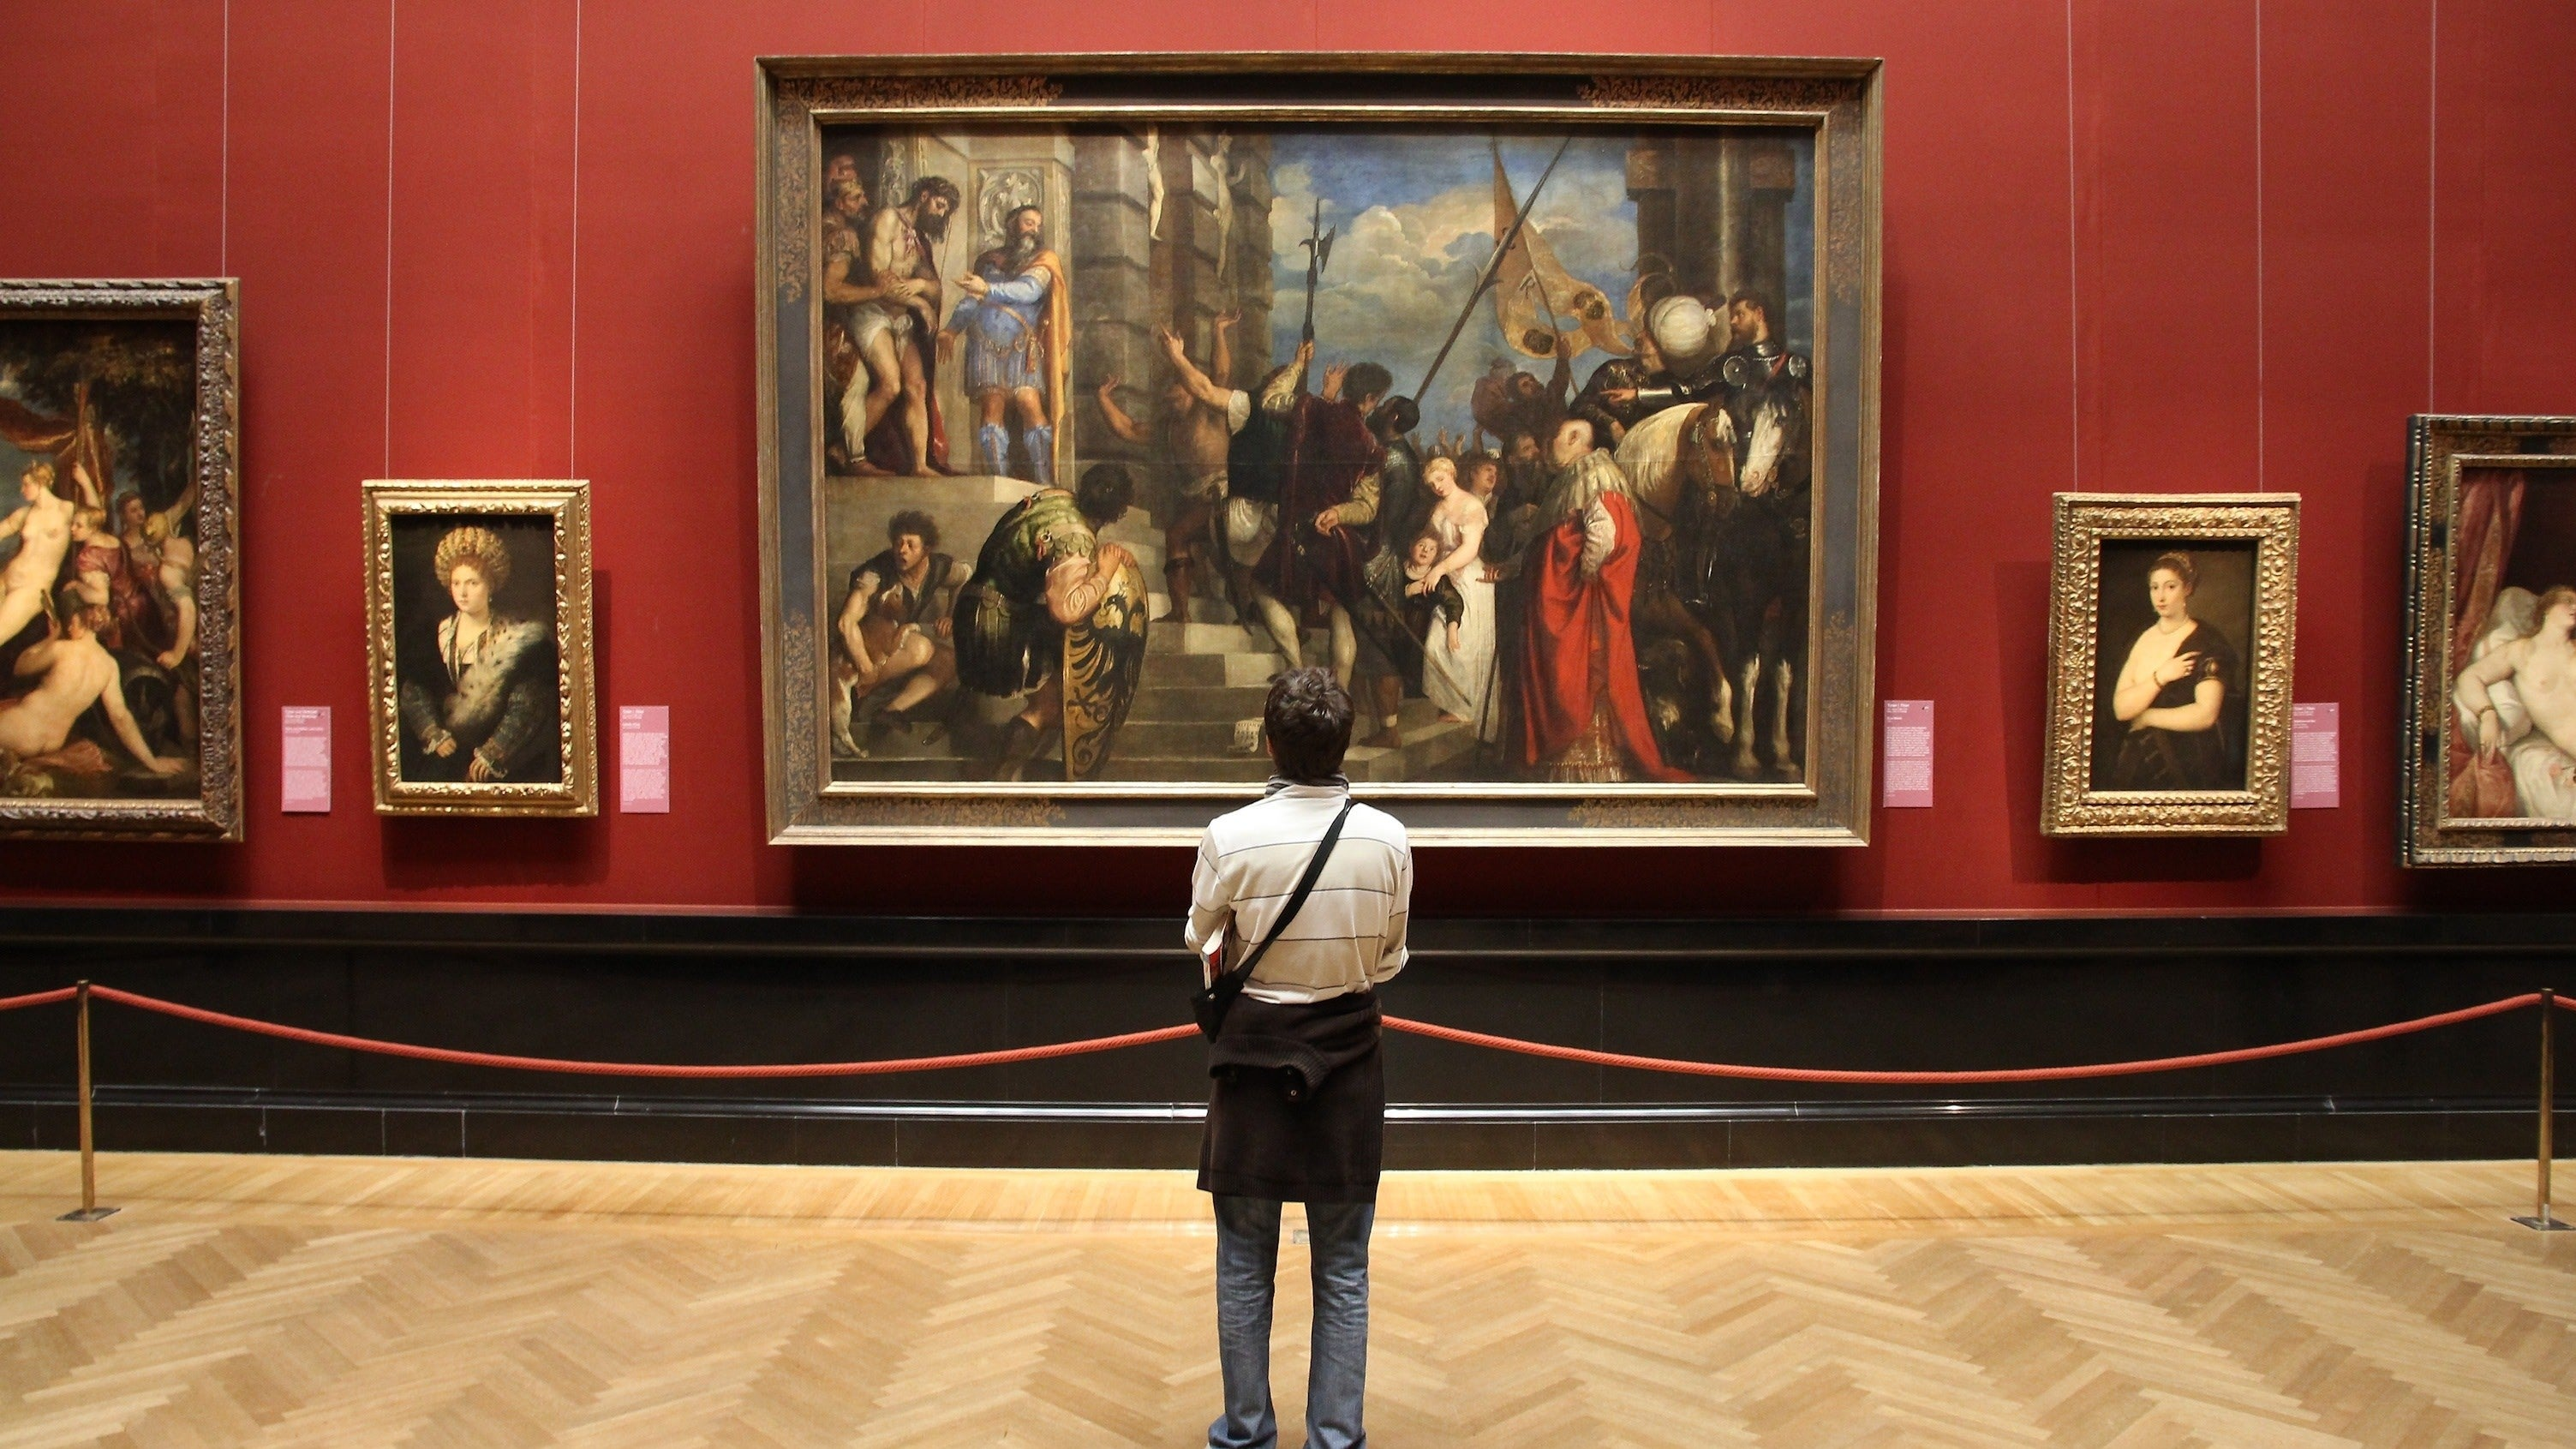 You Can Virtually Tour These 500+ Museums And Galleries From Your Couch